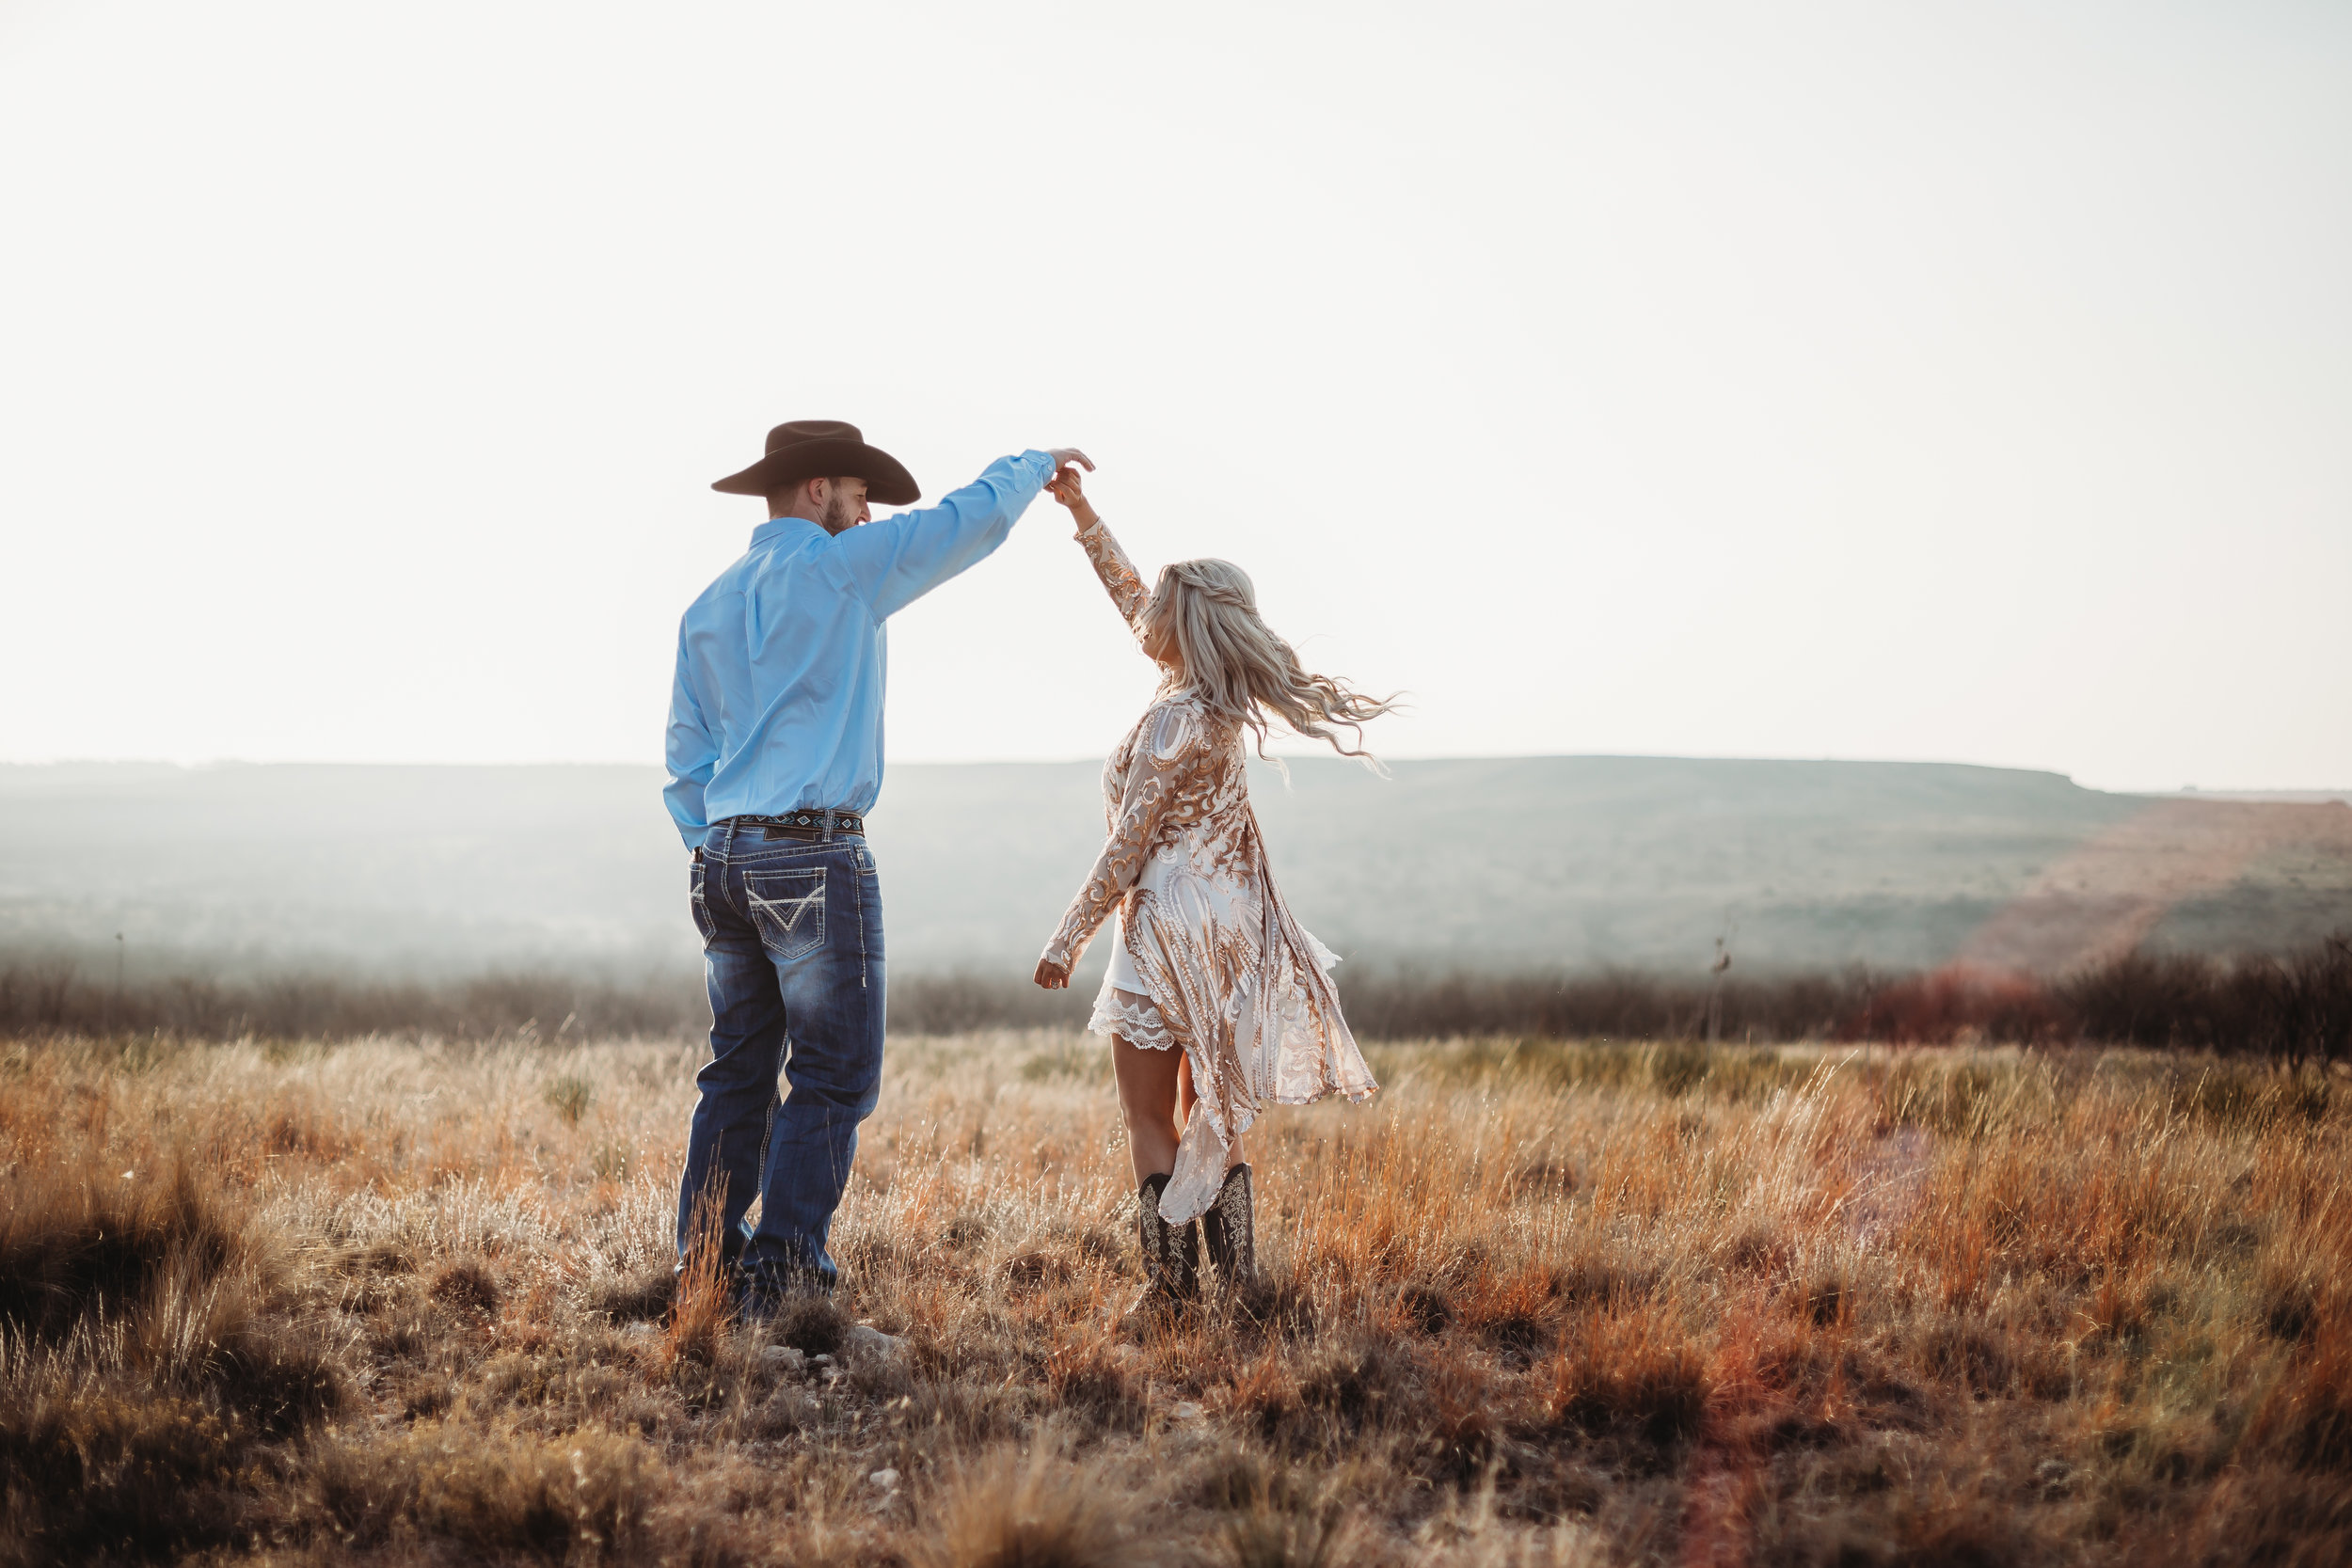 He spins her round and round on top of the world during engagement photo session #engagementphotos #engaged #personality #amarillotexas #engagementphotographer #lifestylephotos #amarillophotographer #locationchoice #texasengagementphotos #engagment #tealawardphotography #westernstyle